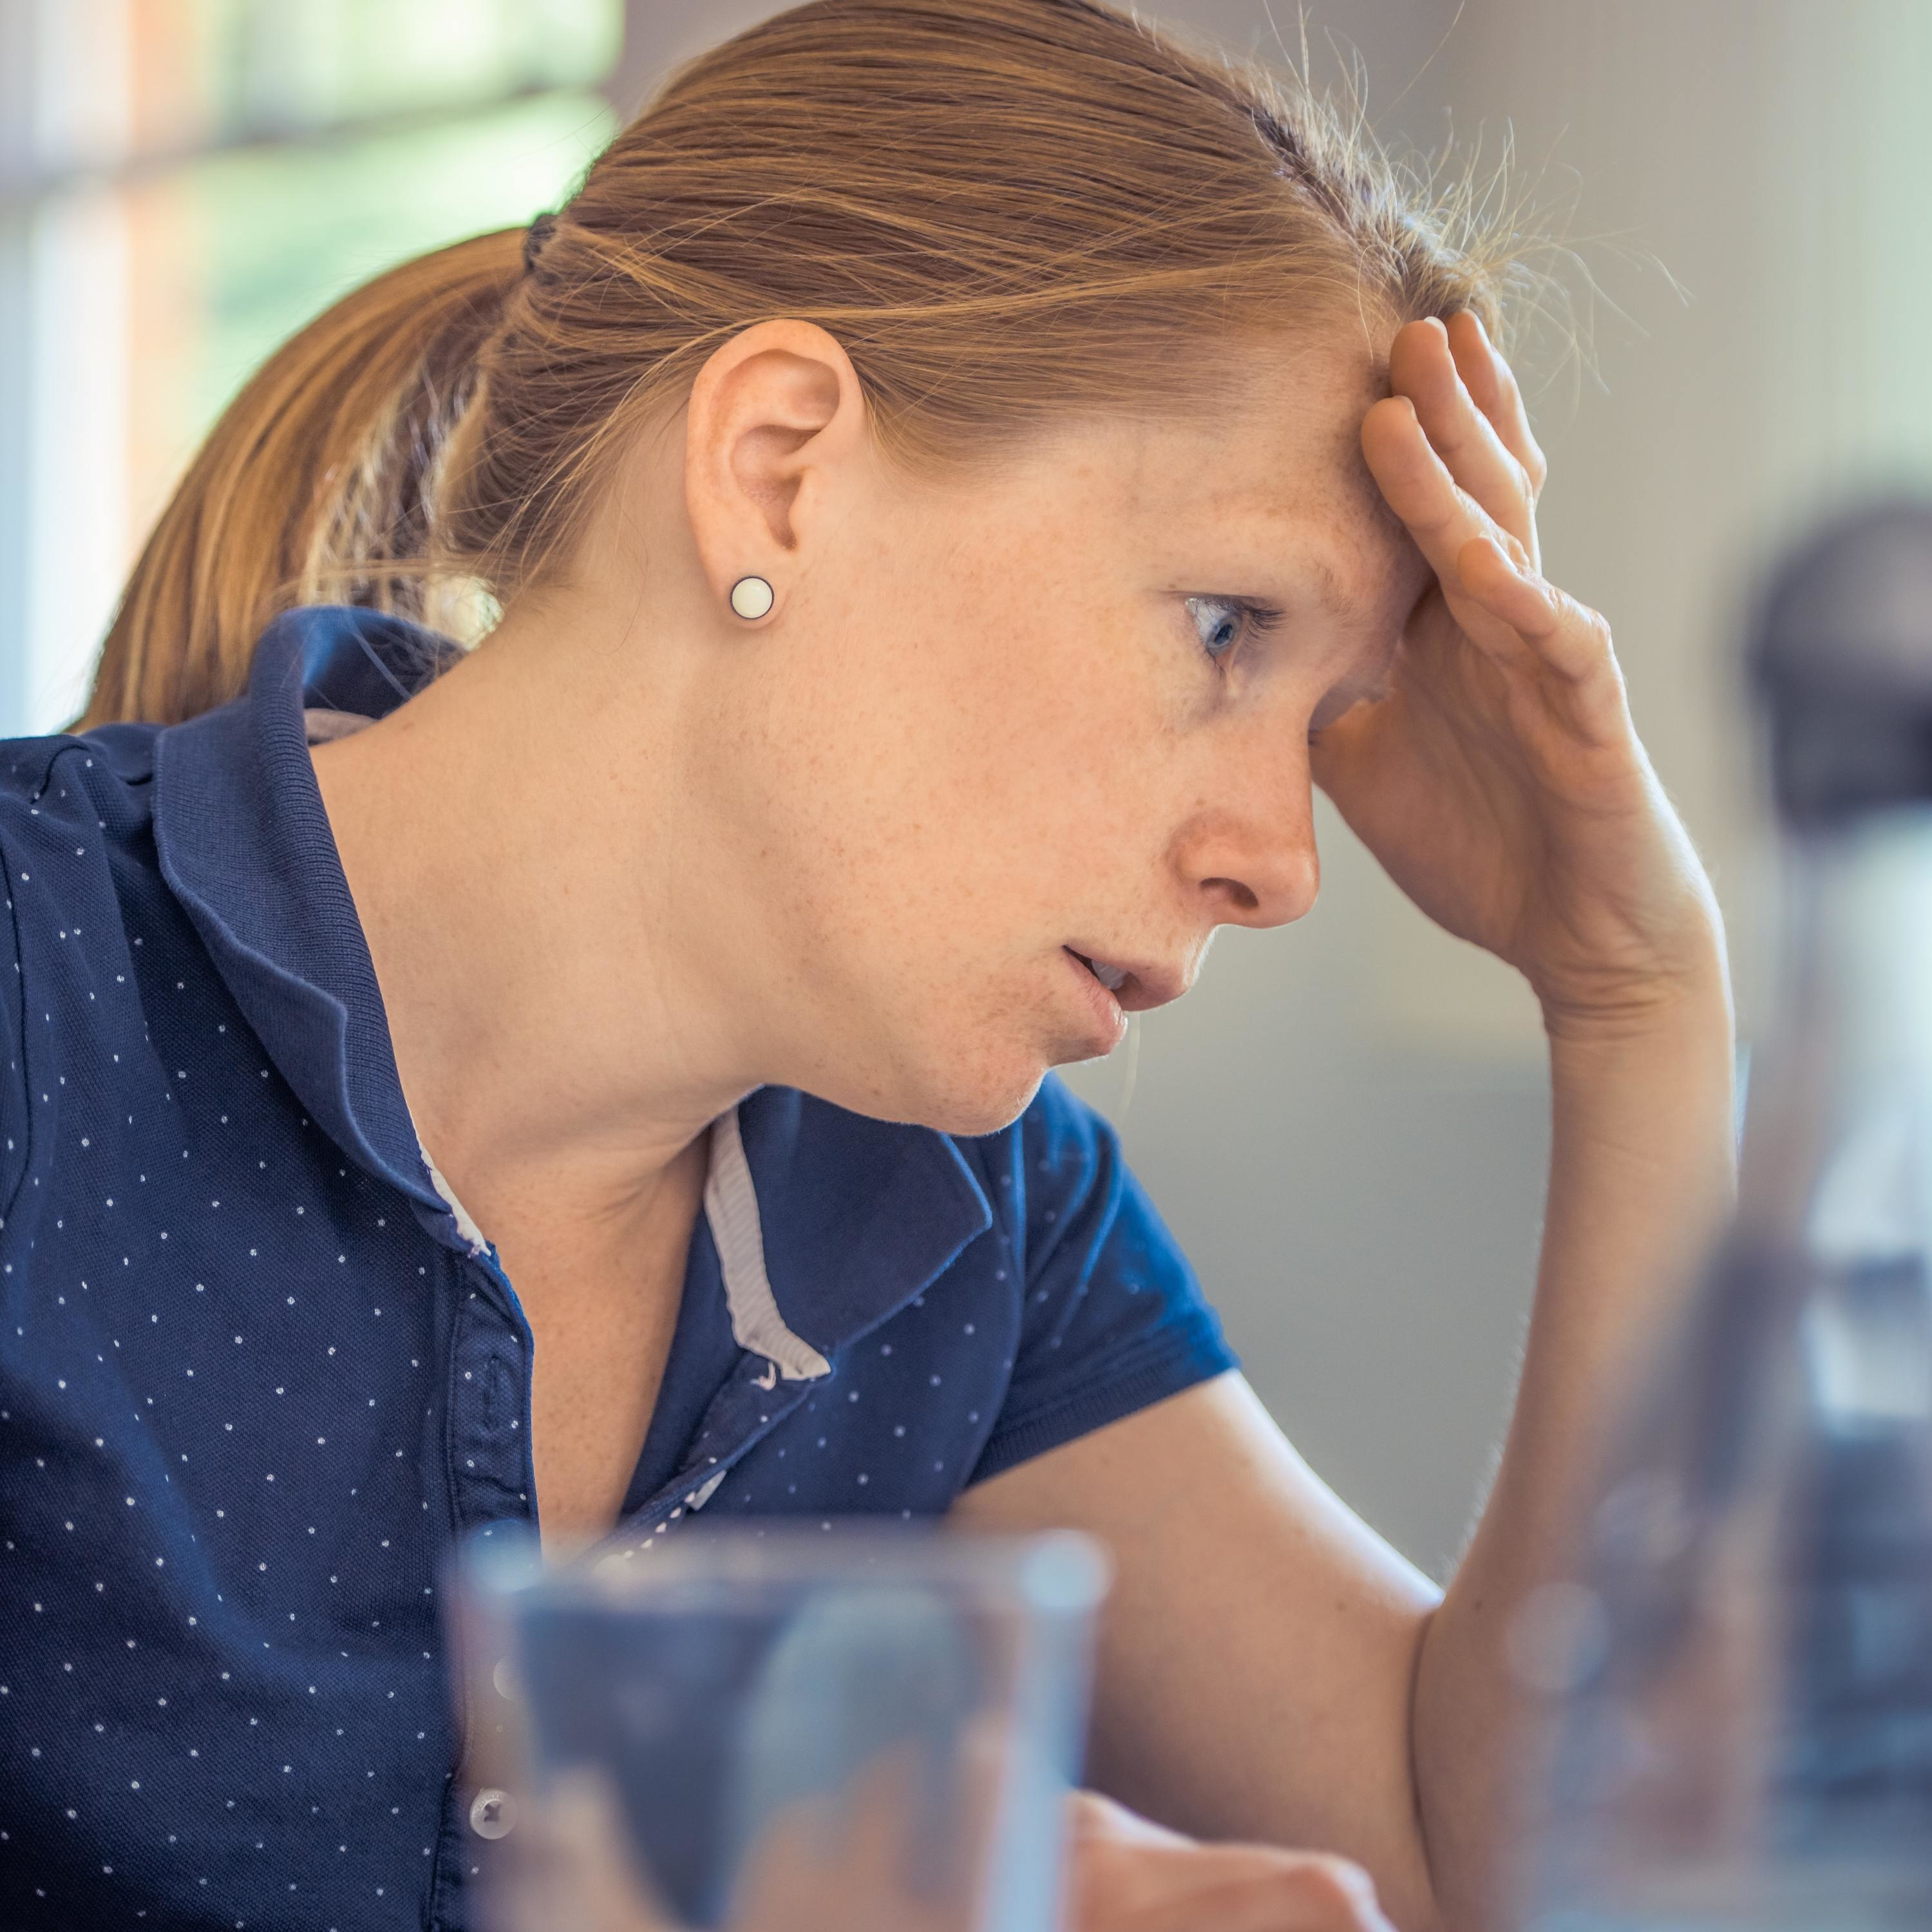 Anxiety, how can we cope with it in our day to day lives? How does it control us and how can we manage it?